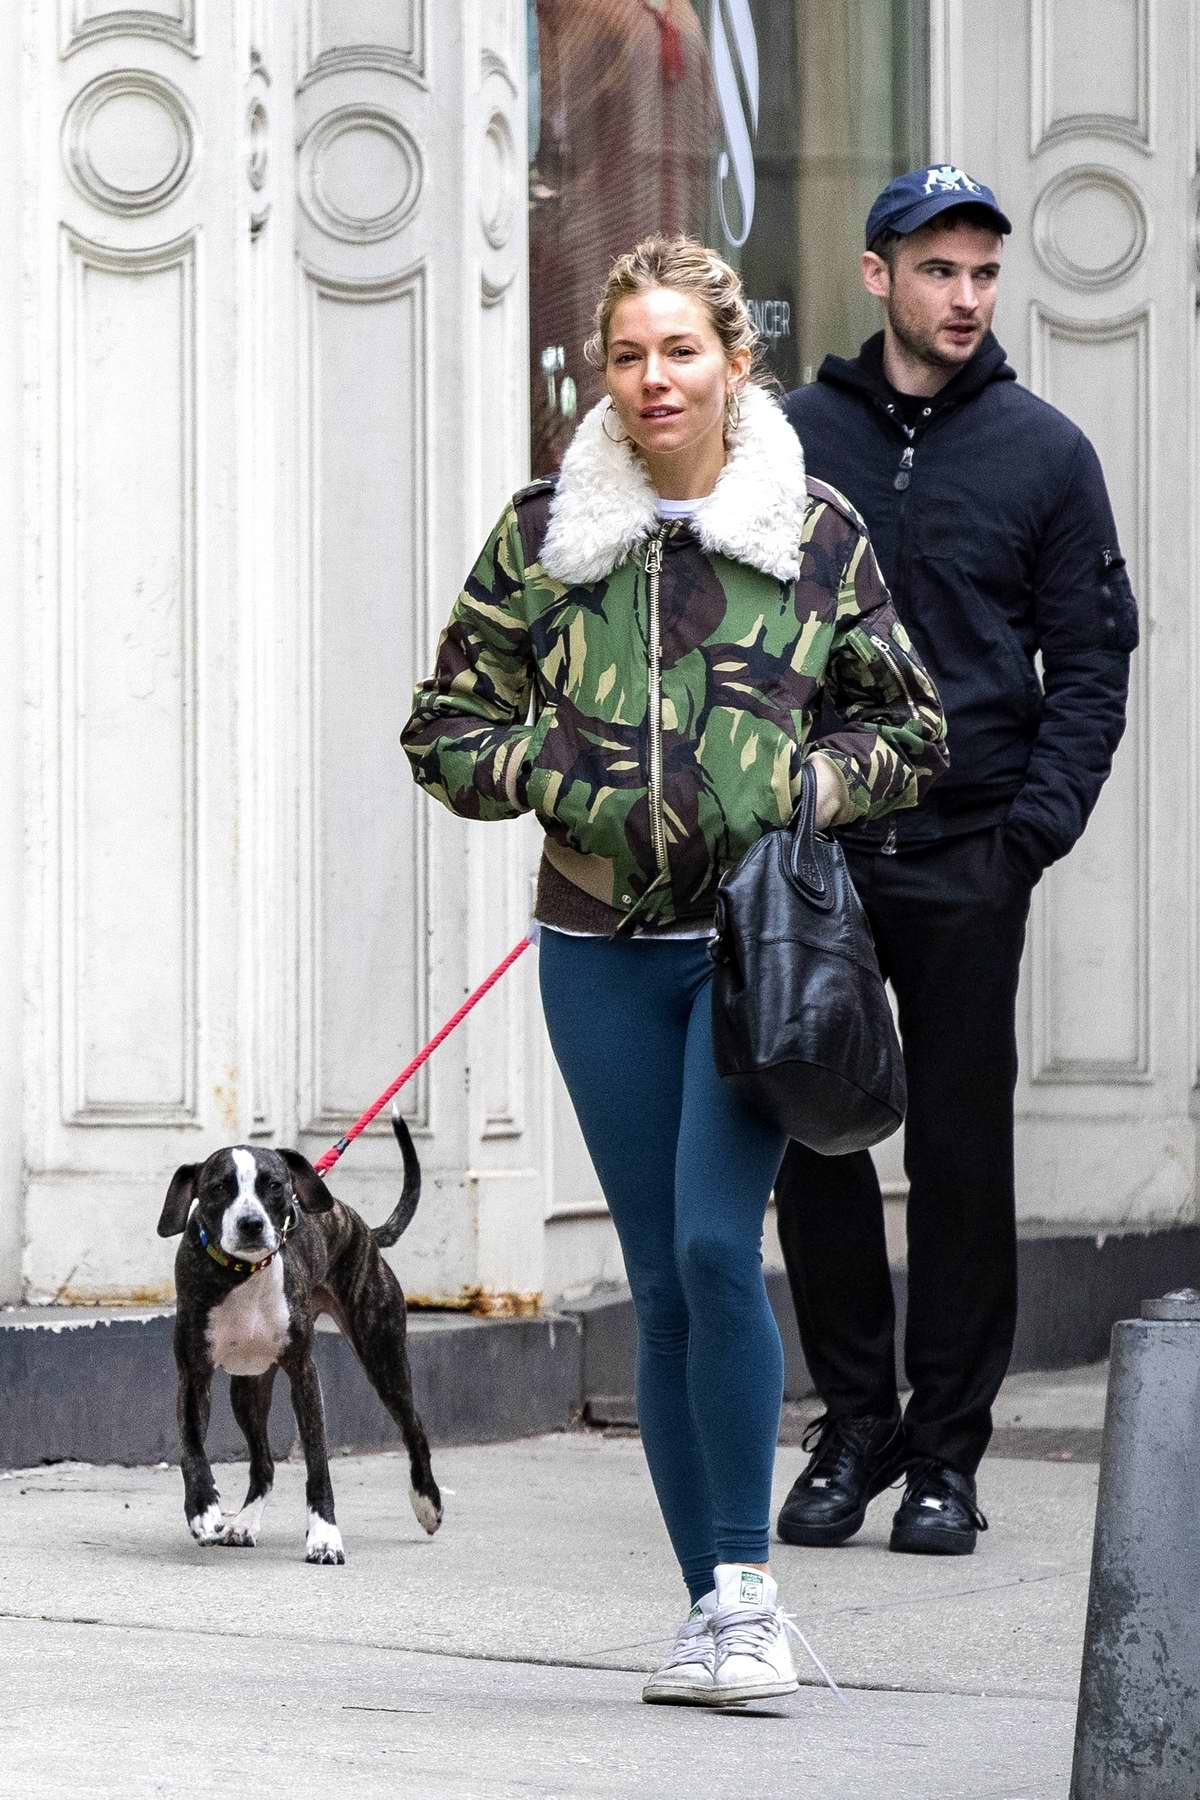 Sienna Miller wears a fur lined Camo jacket with blue leggings as she walks her dog with ex Tom Sturridge in West Village, New York City